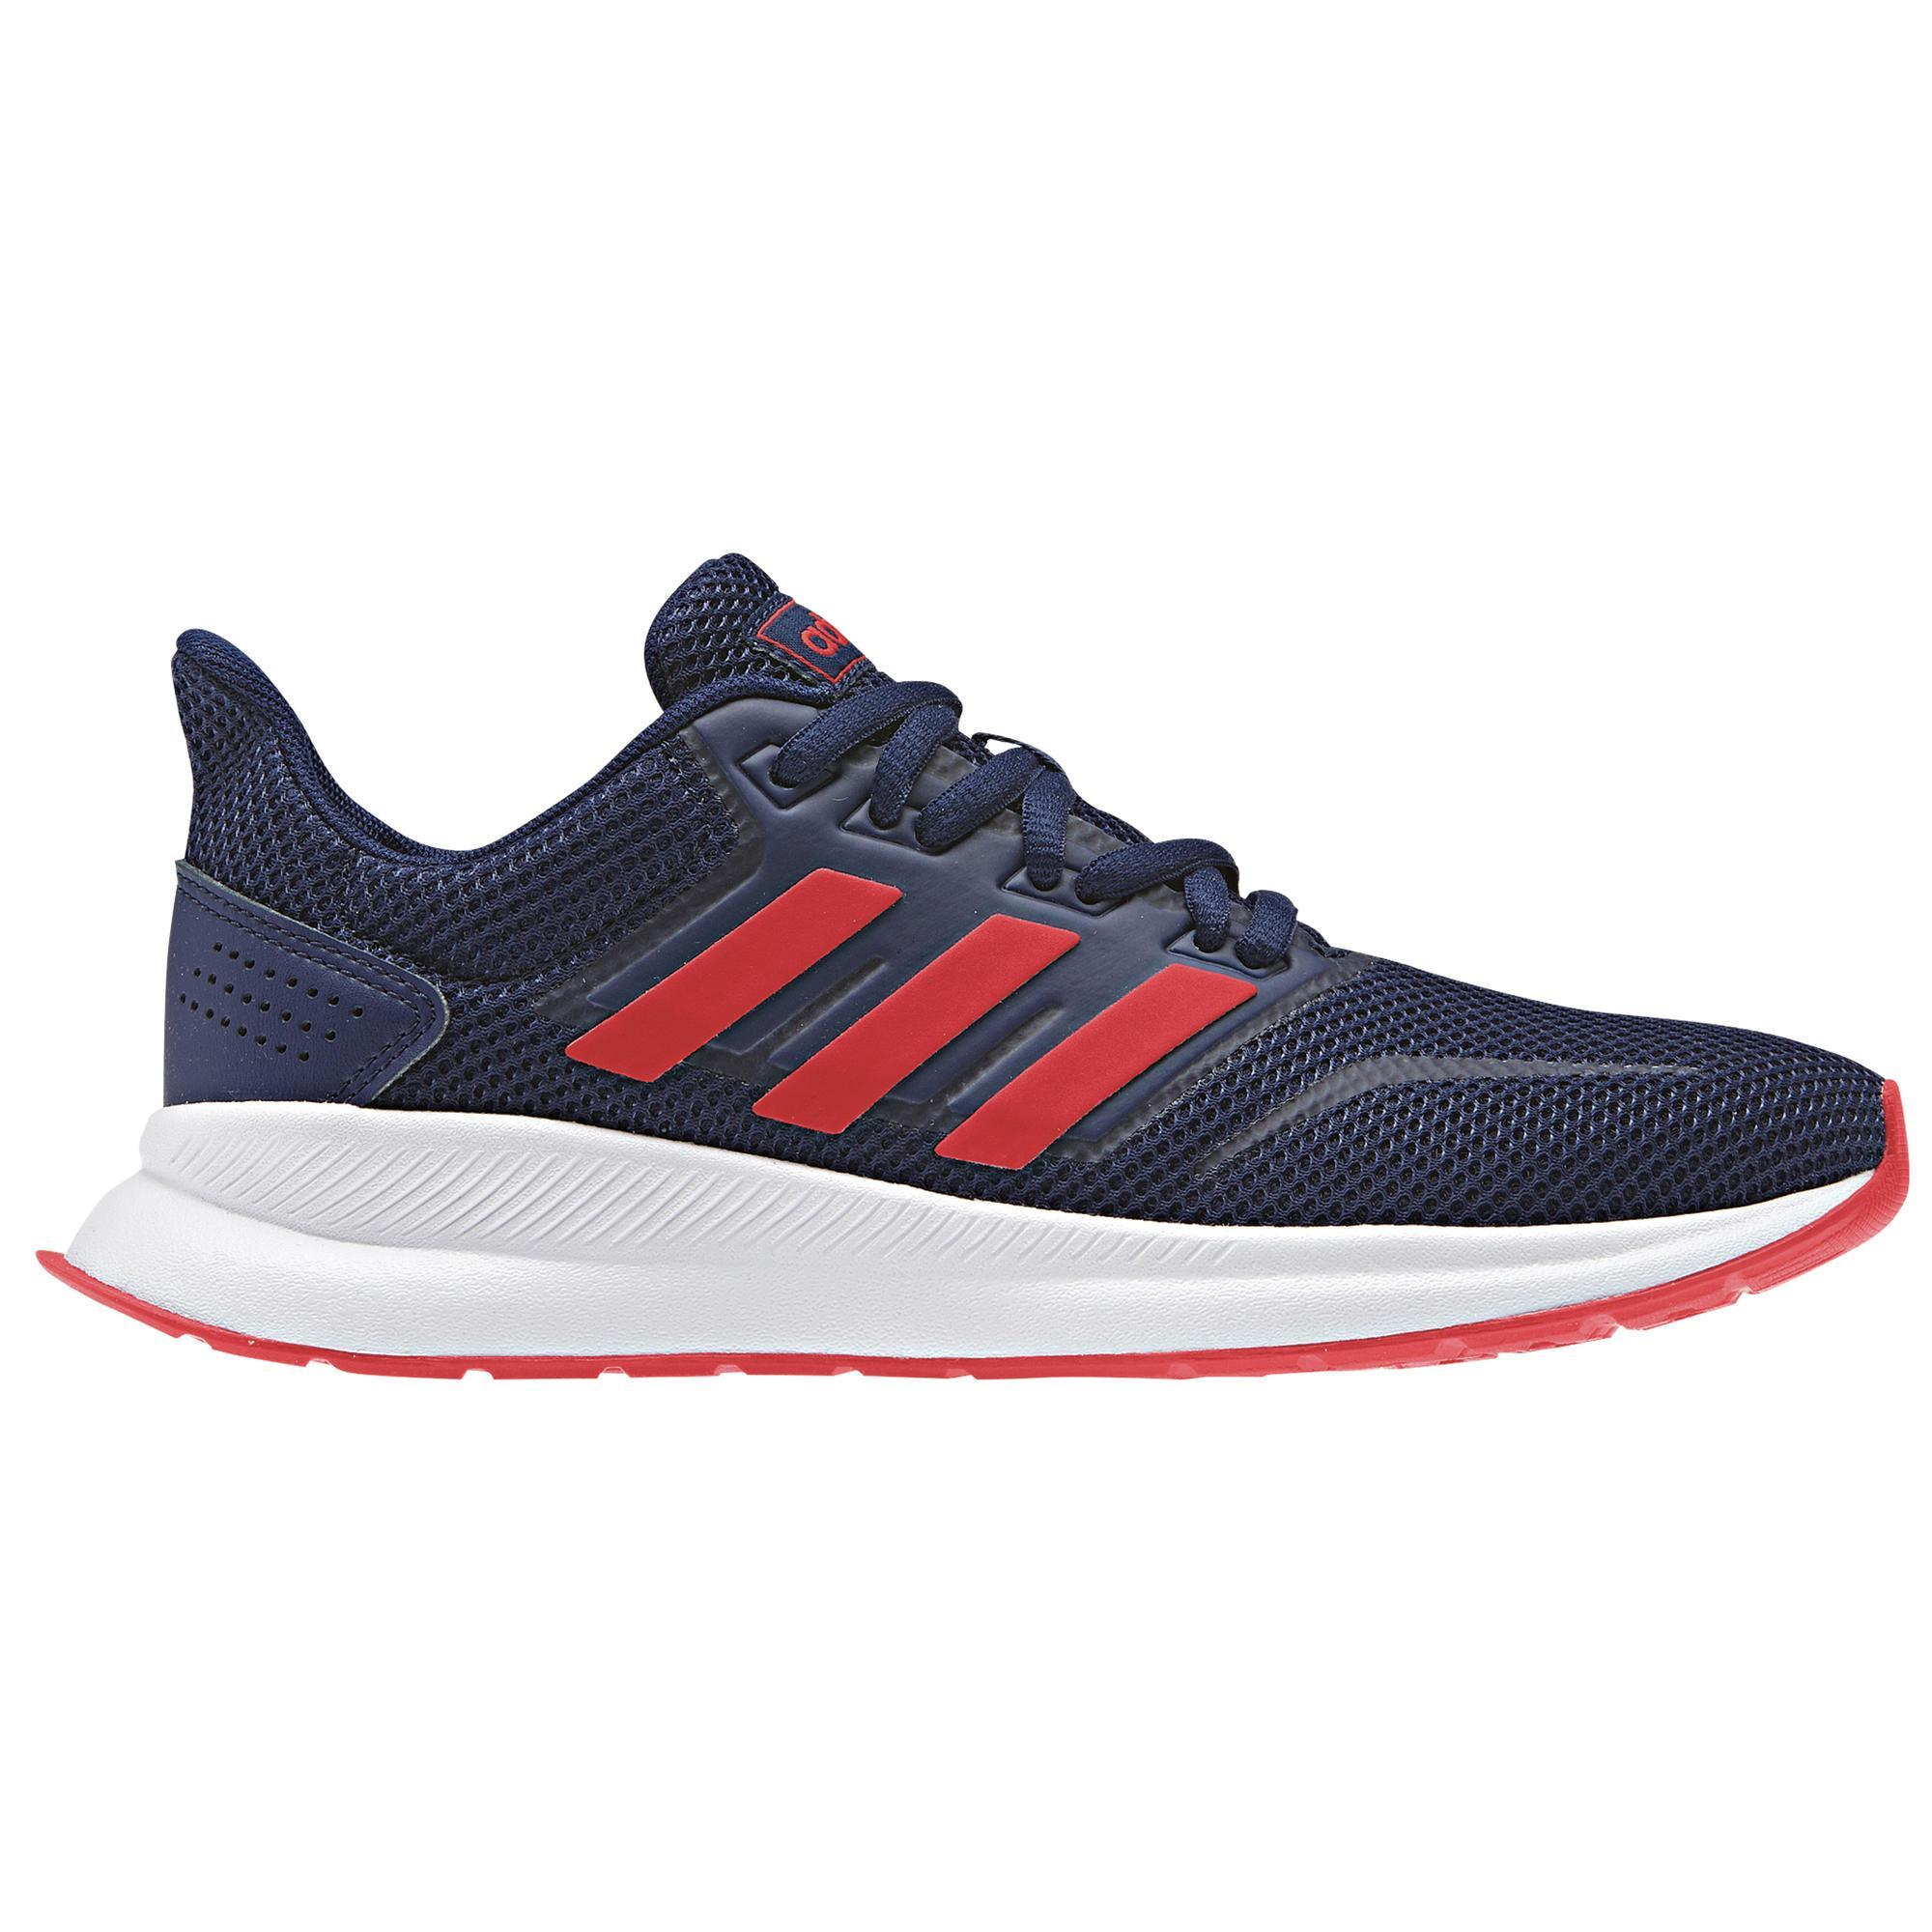 purchase cheap fresh styles online shop Chaussures marche enfant Adidas Falcon bleu / rouge